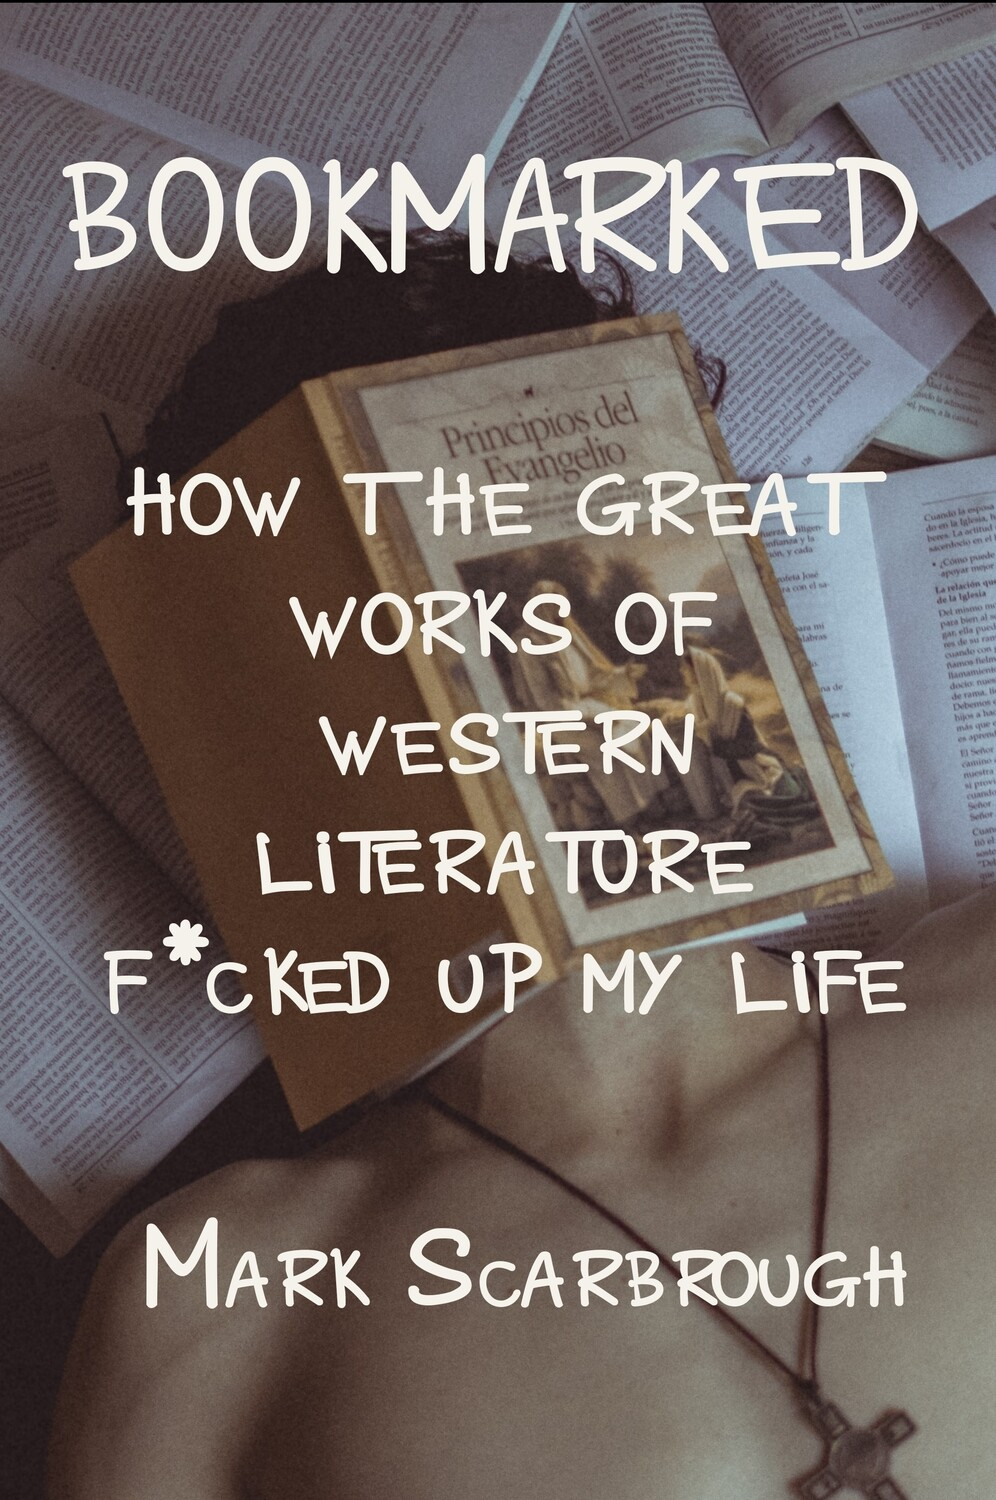 Bookmarked: How the Great Works of Western Literature F*cked up My Life, by Mark Scarbrough